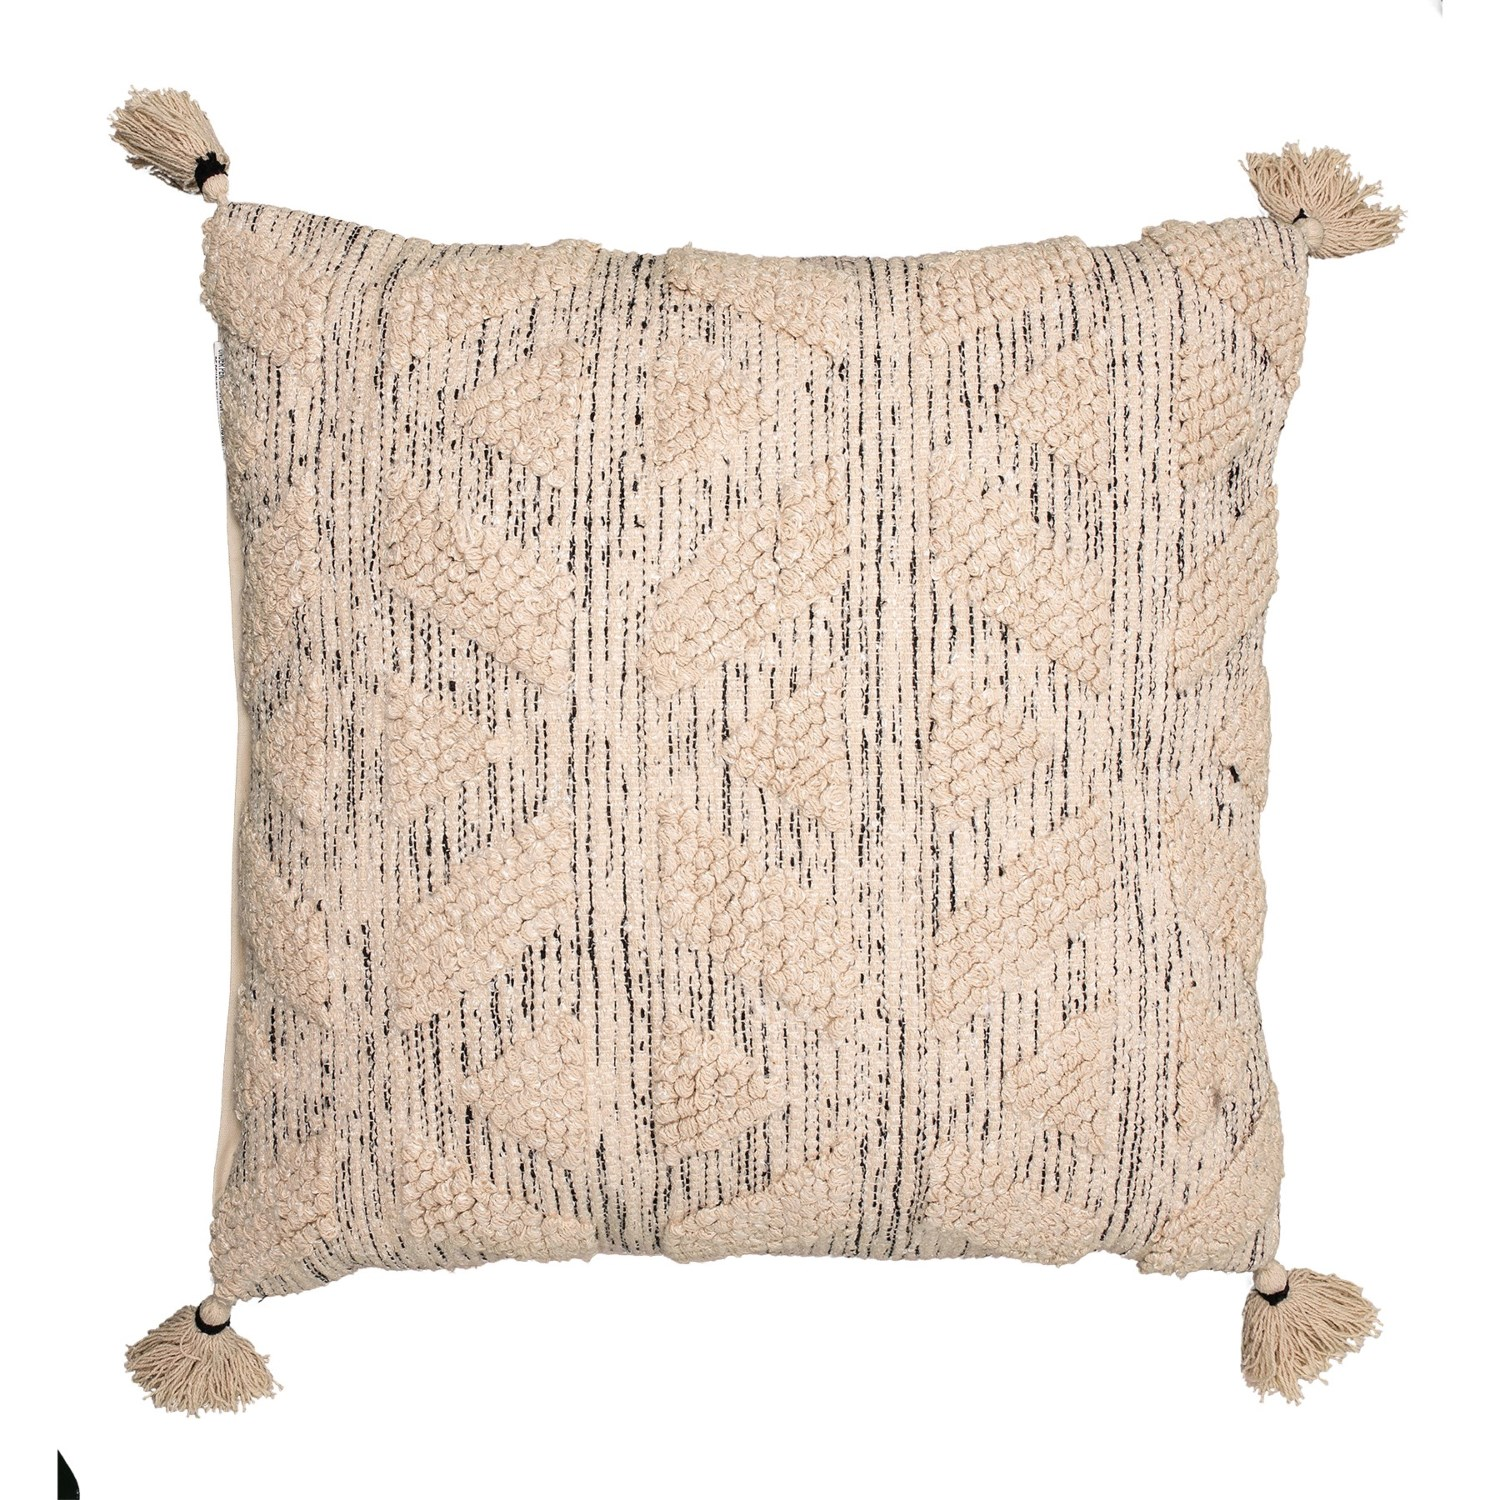 24x24 throw pillow blue euro spencer oversized angie natural textured throw pillow 24x24 in 24x24